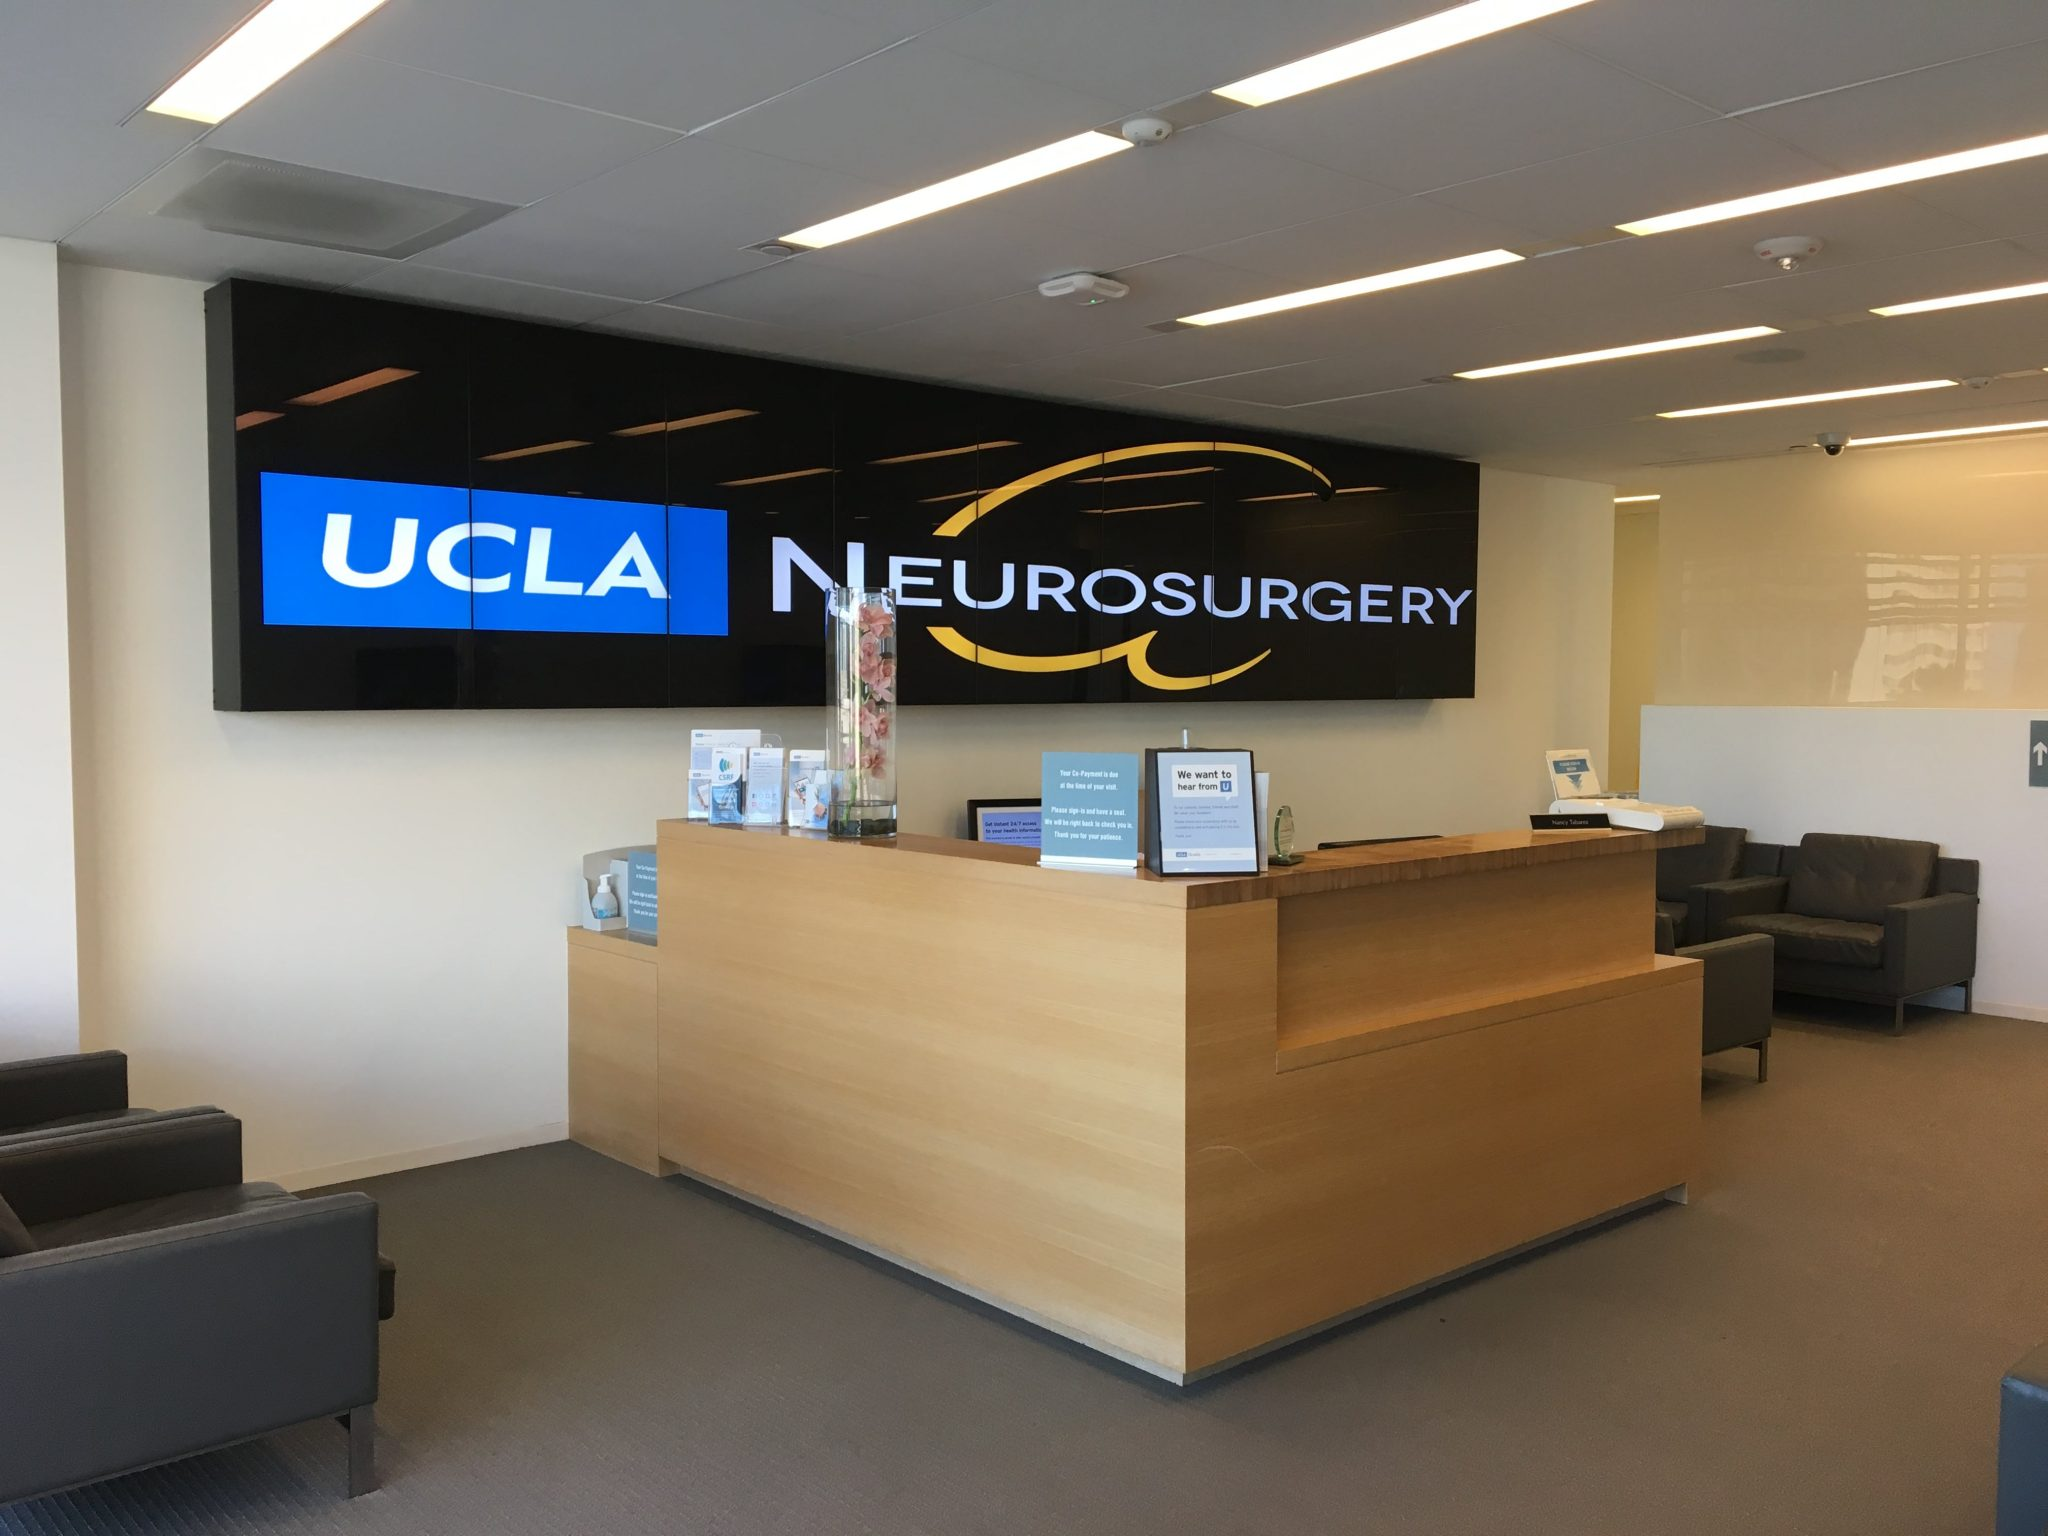 AIALA Healthcare Event at UCLA - Neurosurgery